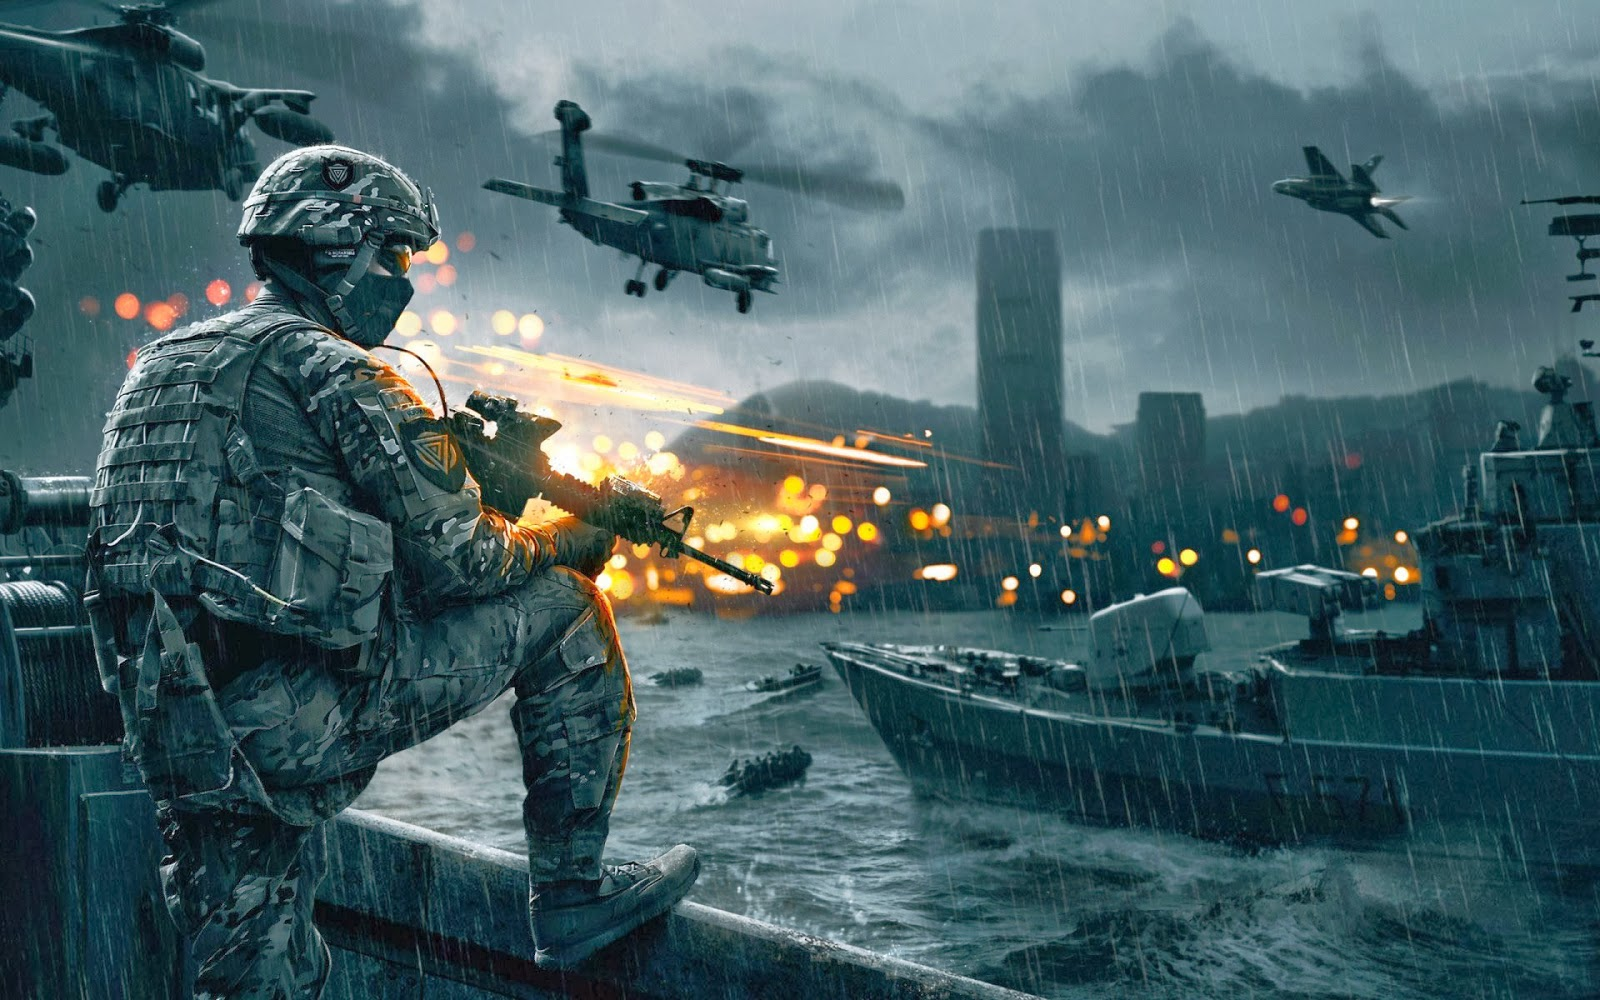 Bf4 wallpaper wallpapersafari - Bf4 wallpaper ...